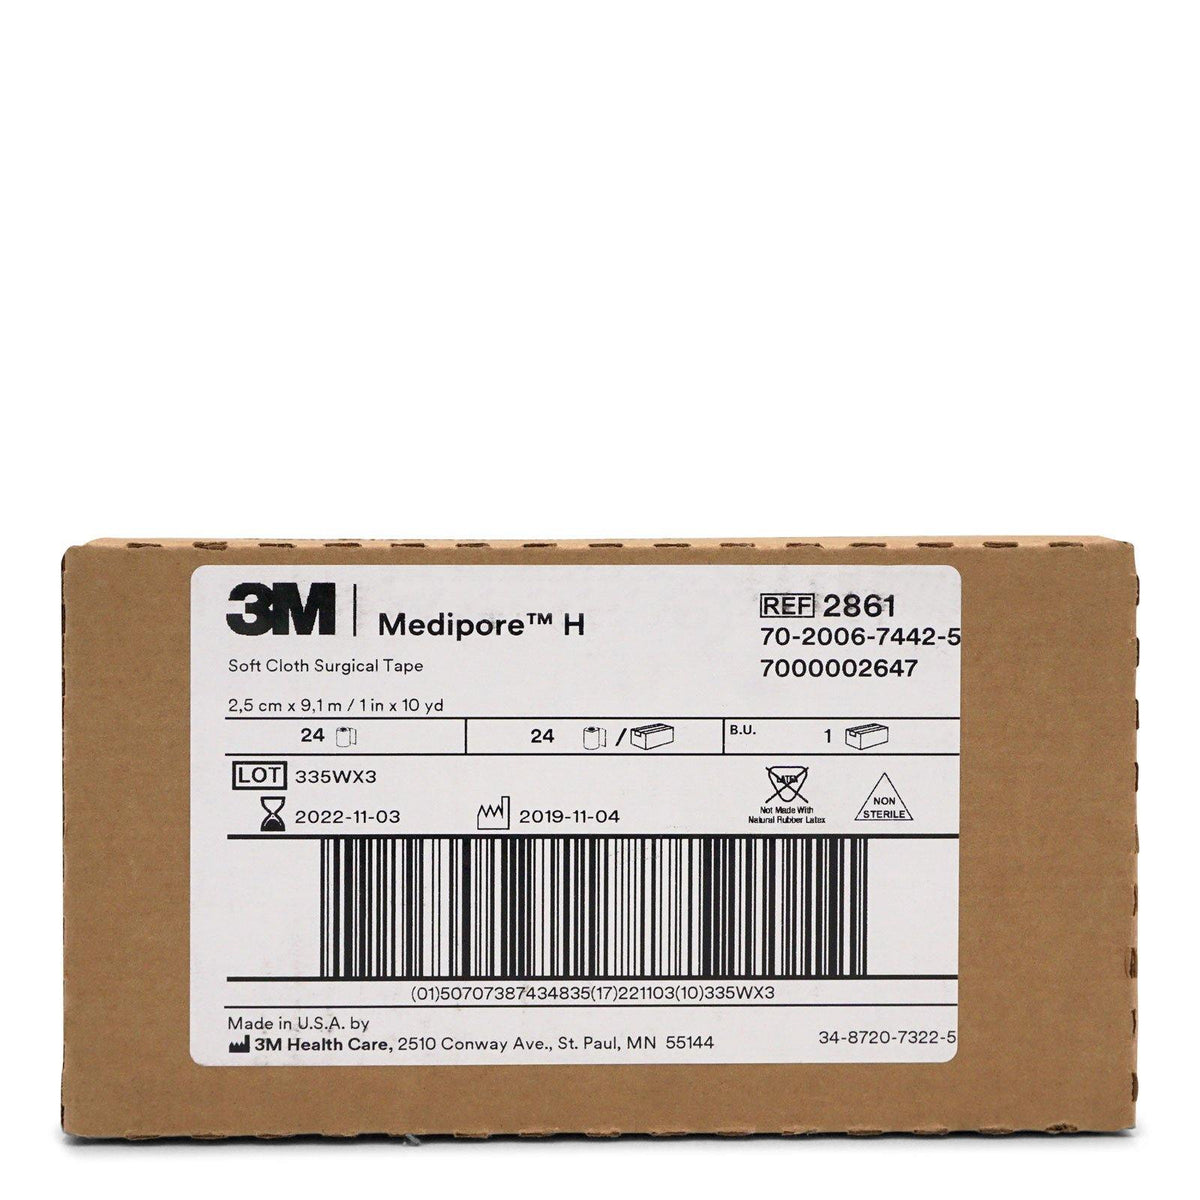 3M Healthcare | Medipore H Soft Cloth Surgical Tape 2'' x 10 Yards  (24/cs)